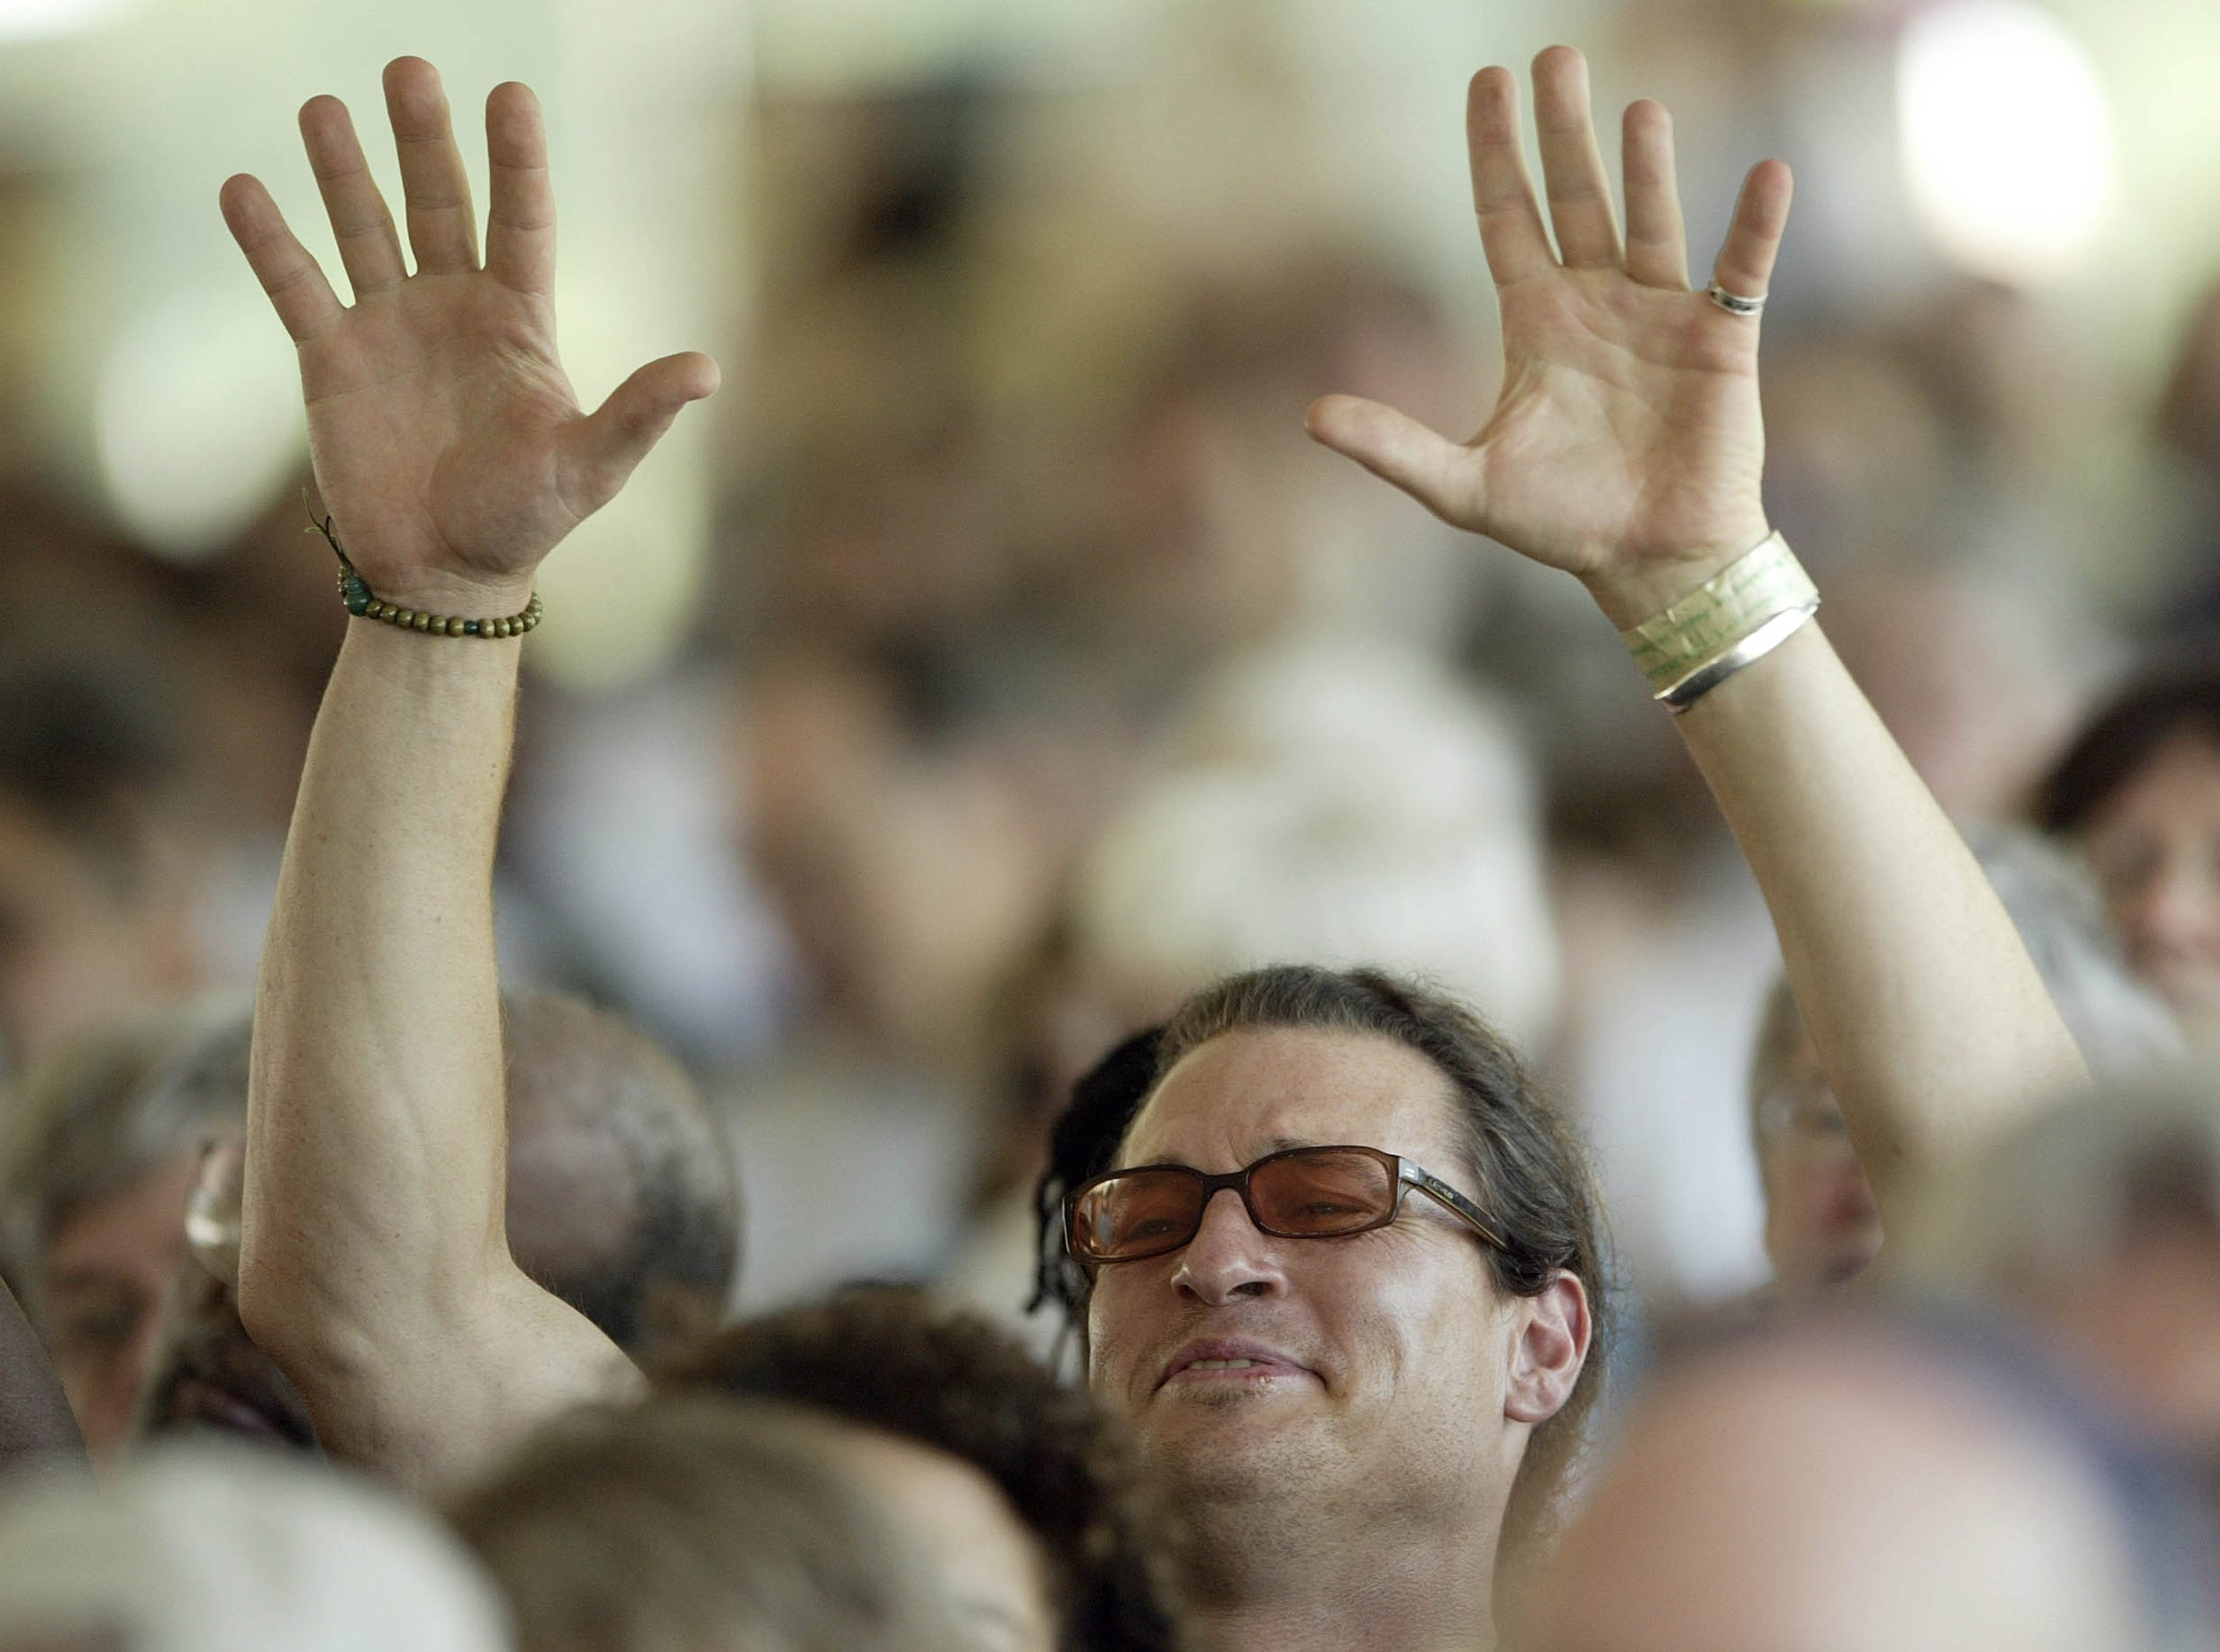 Stephen Meyers from Berkley, Calif., raises his hands in praise during a gathering to mark the 75th Anniversary of the Highlander Center Saturday, Sept. 1, 2007 in New Market, Tenn.  The little school tucked away in the east Tennessee mountains may have faded from the public spotlight, but it was once at the center of the struggle for civil rights.